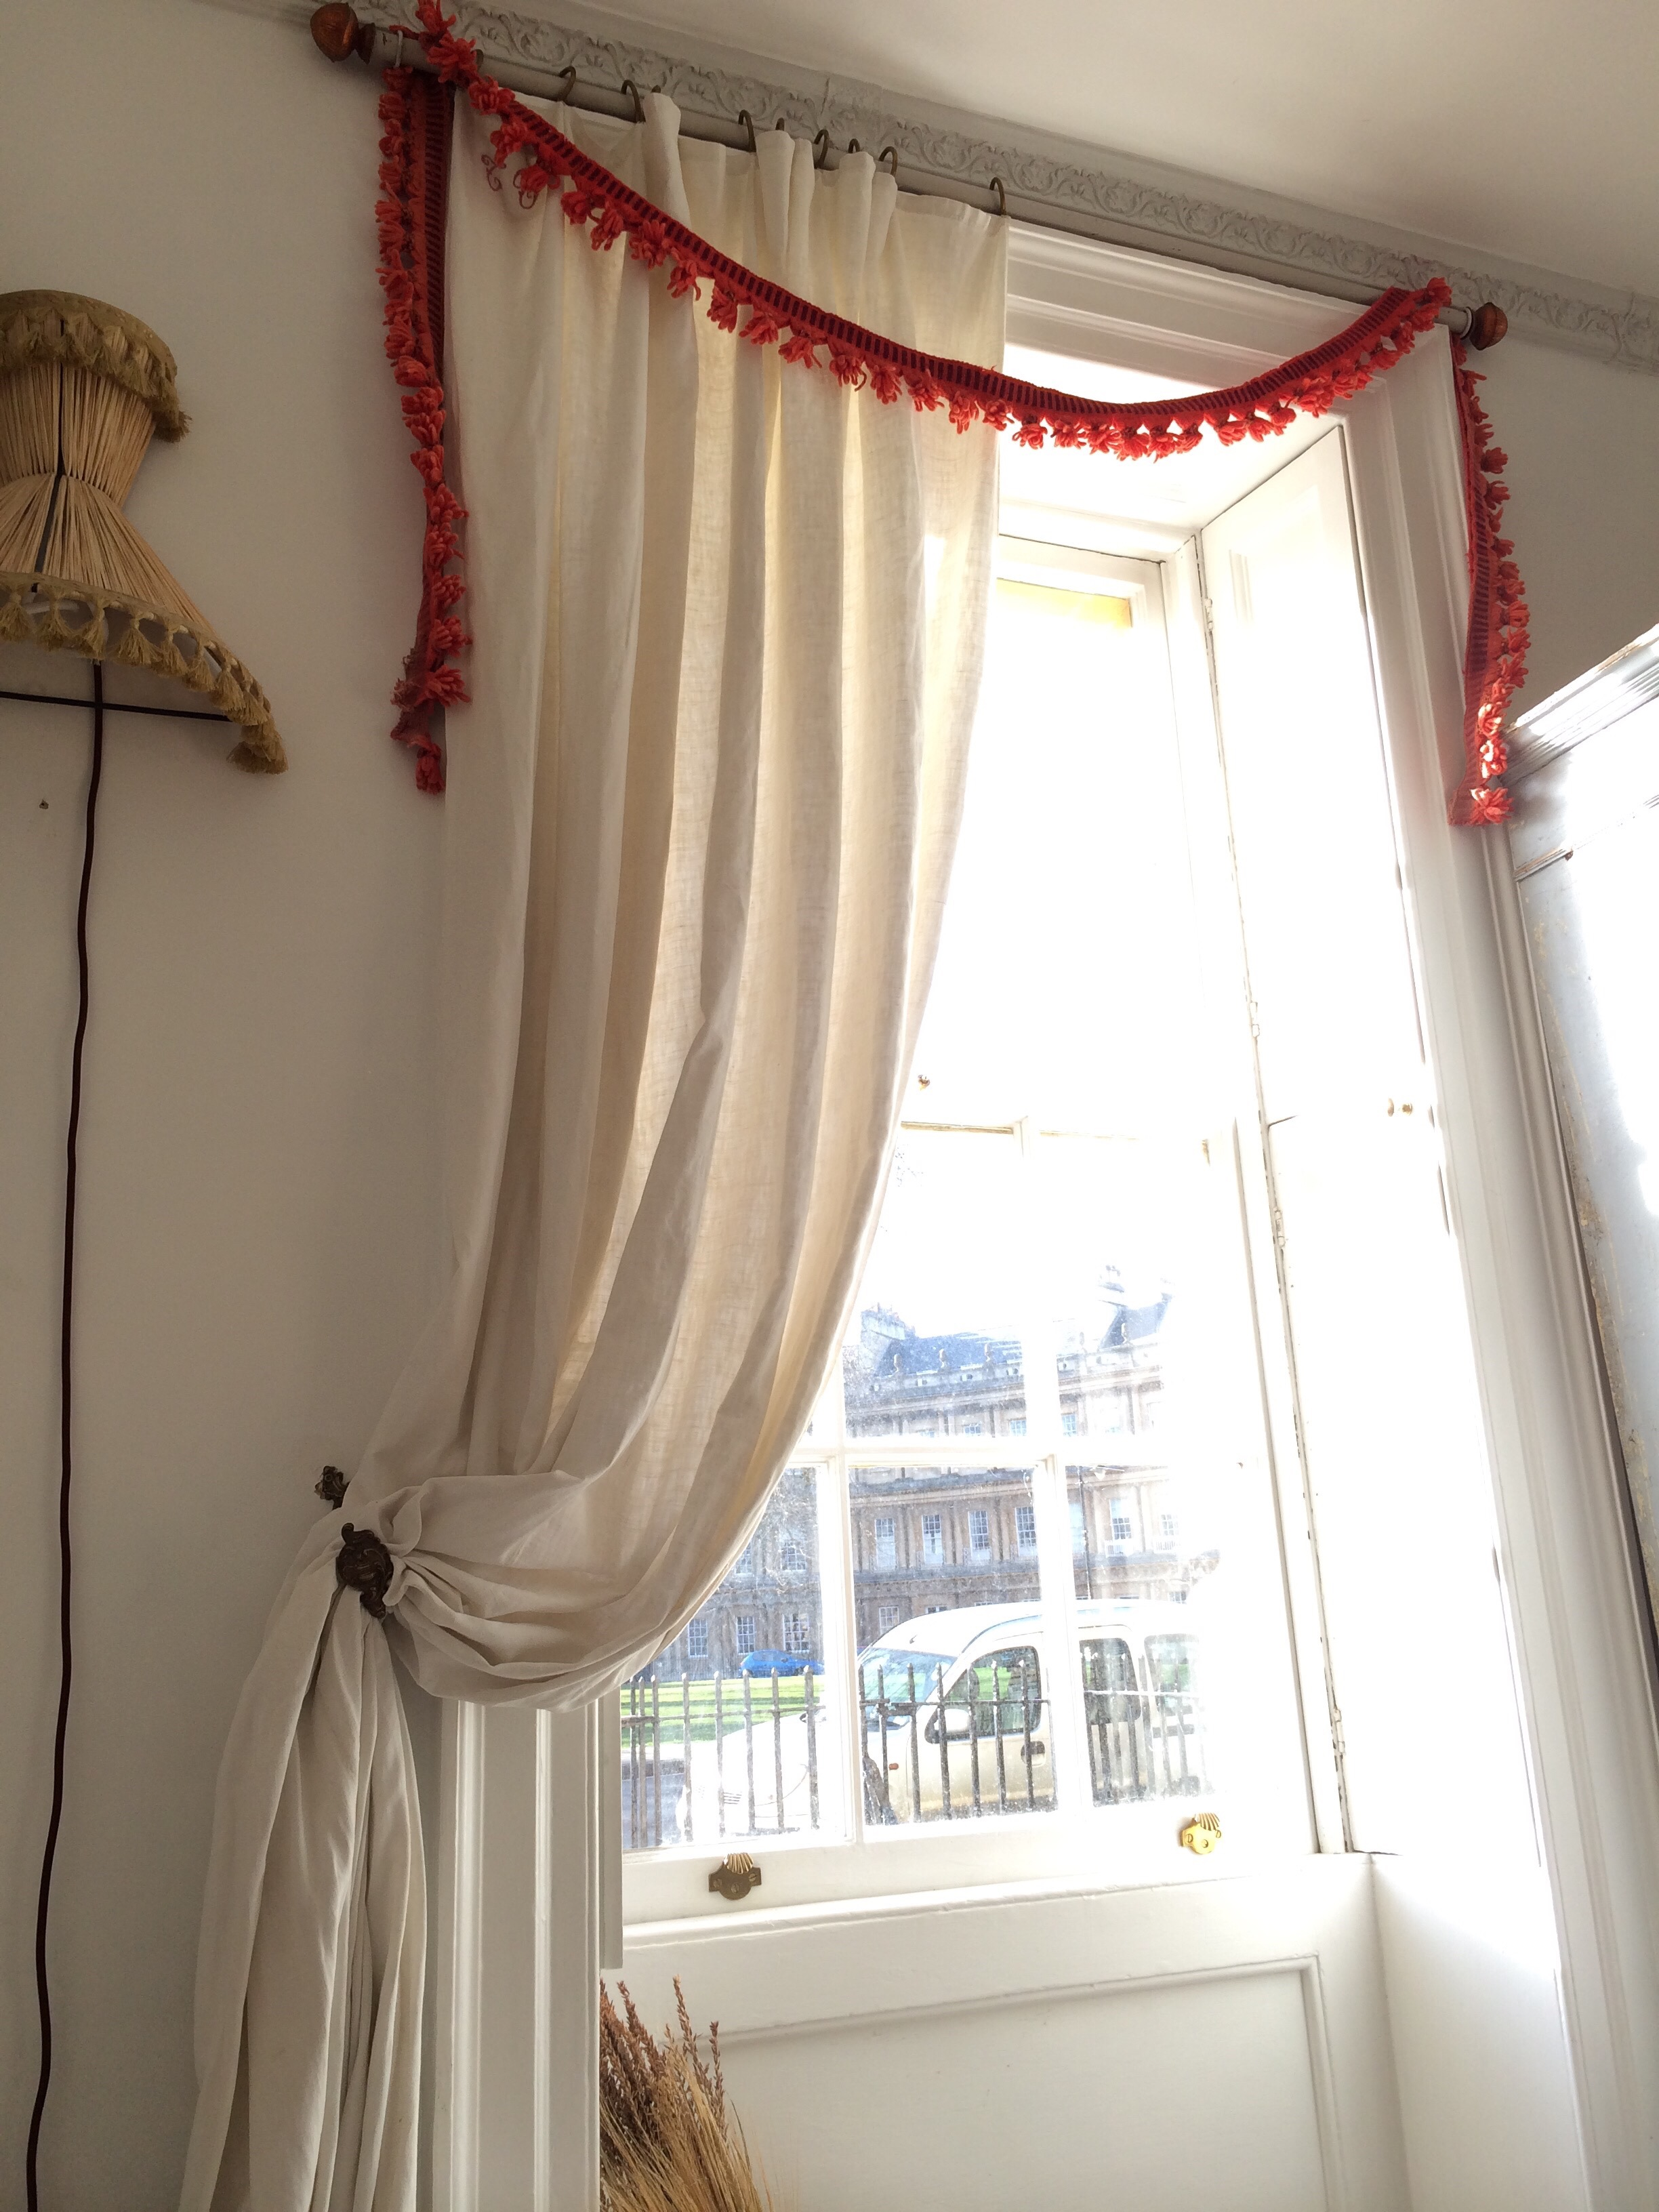 Felicity masters the high + low appeal.A garland of antique trimmings hang from the ornate crown molding of the windowsill.